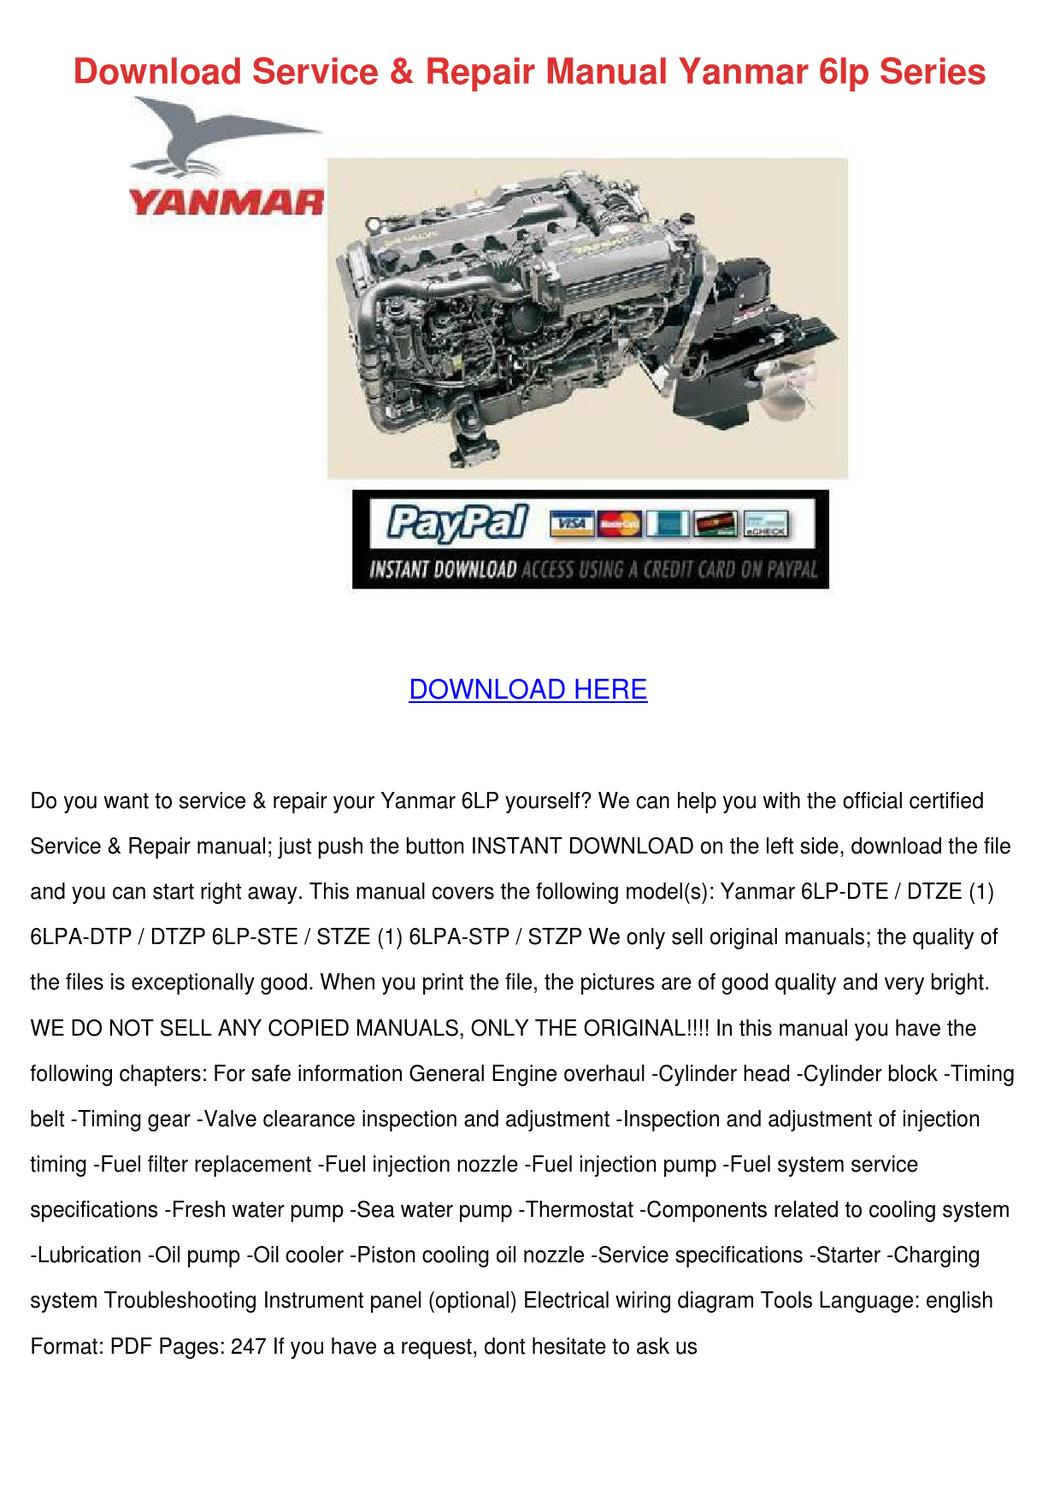 diesel pdf Page 1 of 11 material safety data sheet msds: 844 diesel revision: 01/30/2012 section 1: product and company identification product name: diesel.